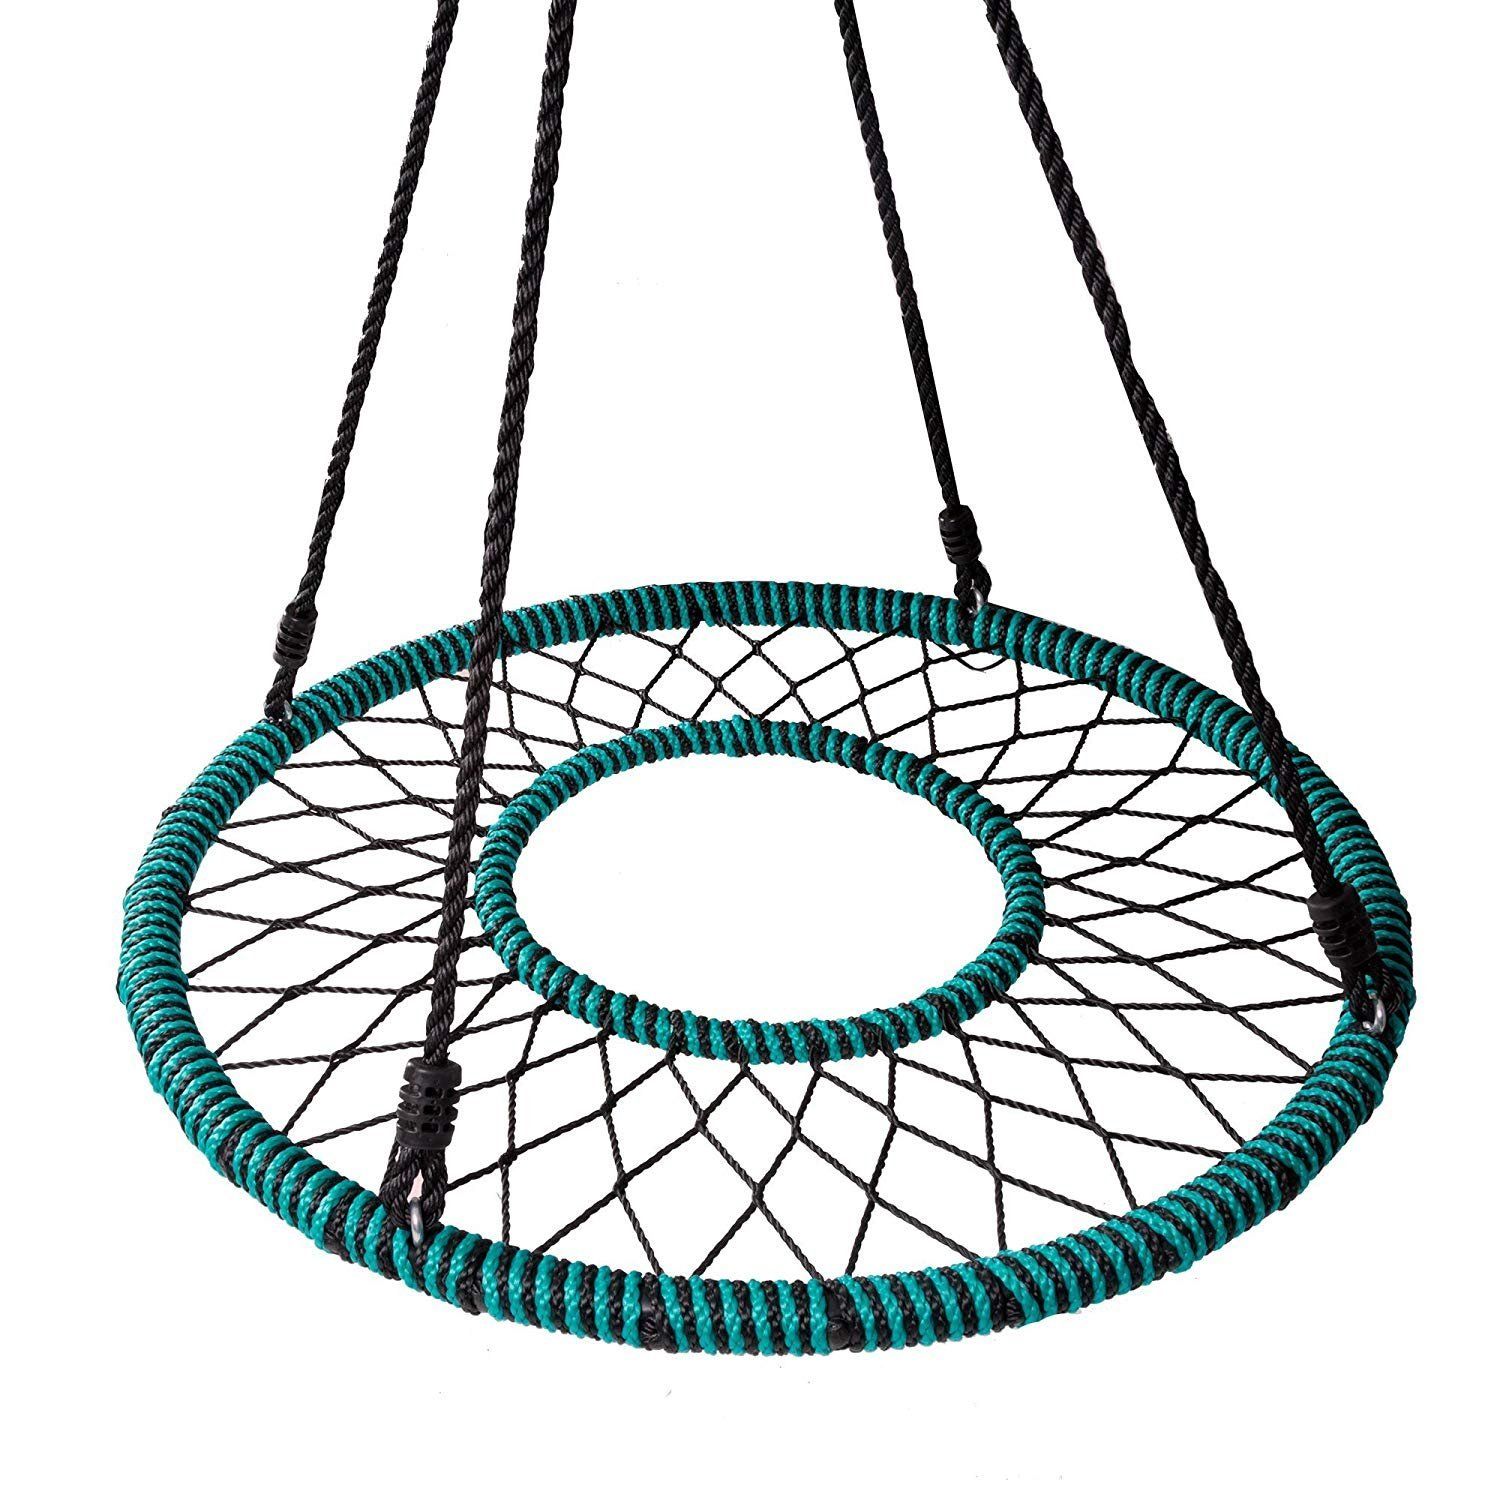 Play Platoon Spider Web Tree Swing with Open Center - Fully Assembled Tire Swing, 40 Inch Diameter, 600 lb Weight Capacity, Easy to Install by Play Platoon